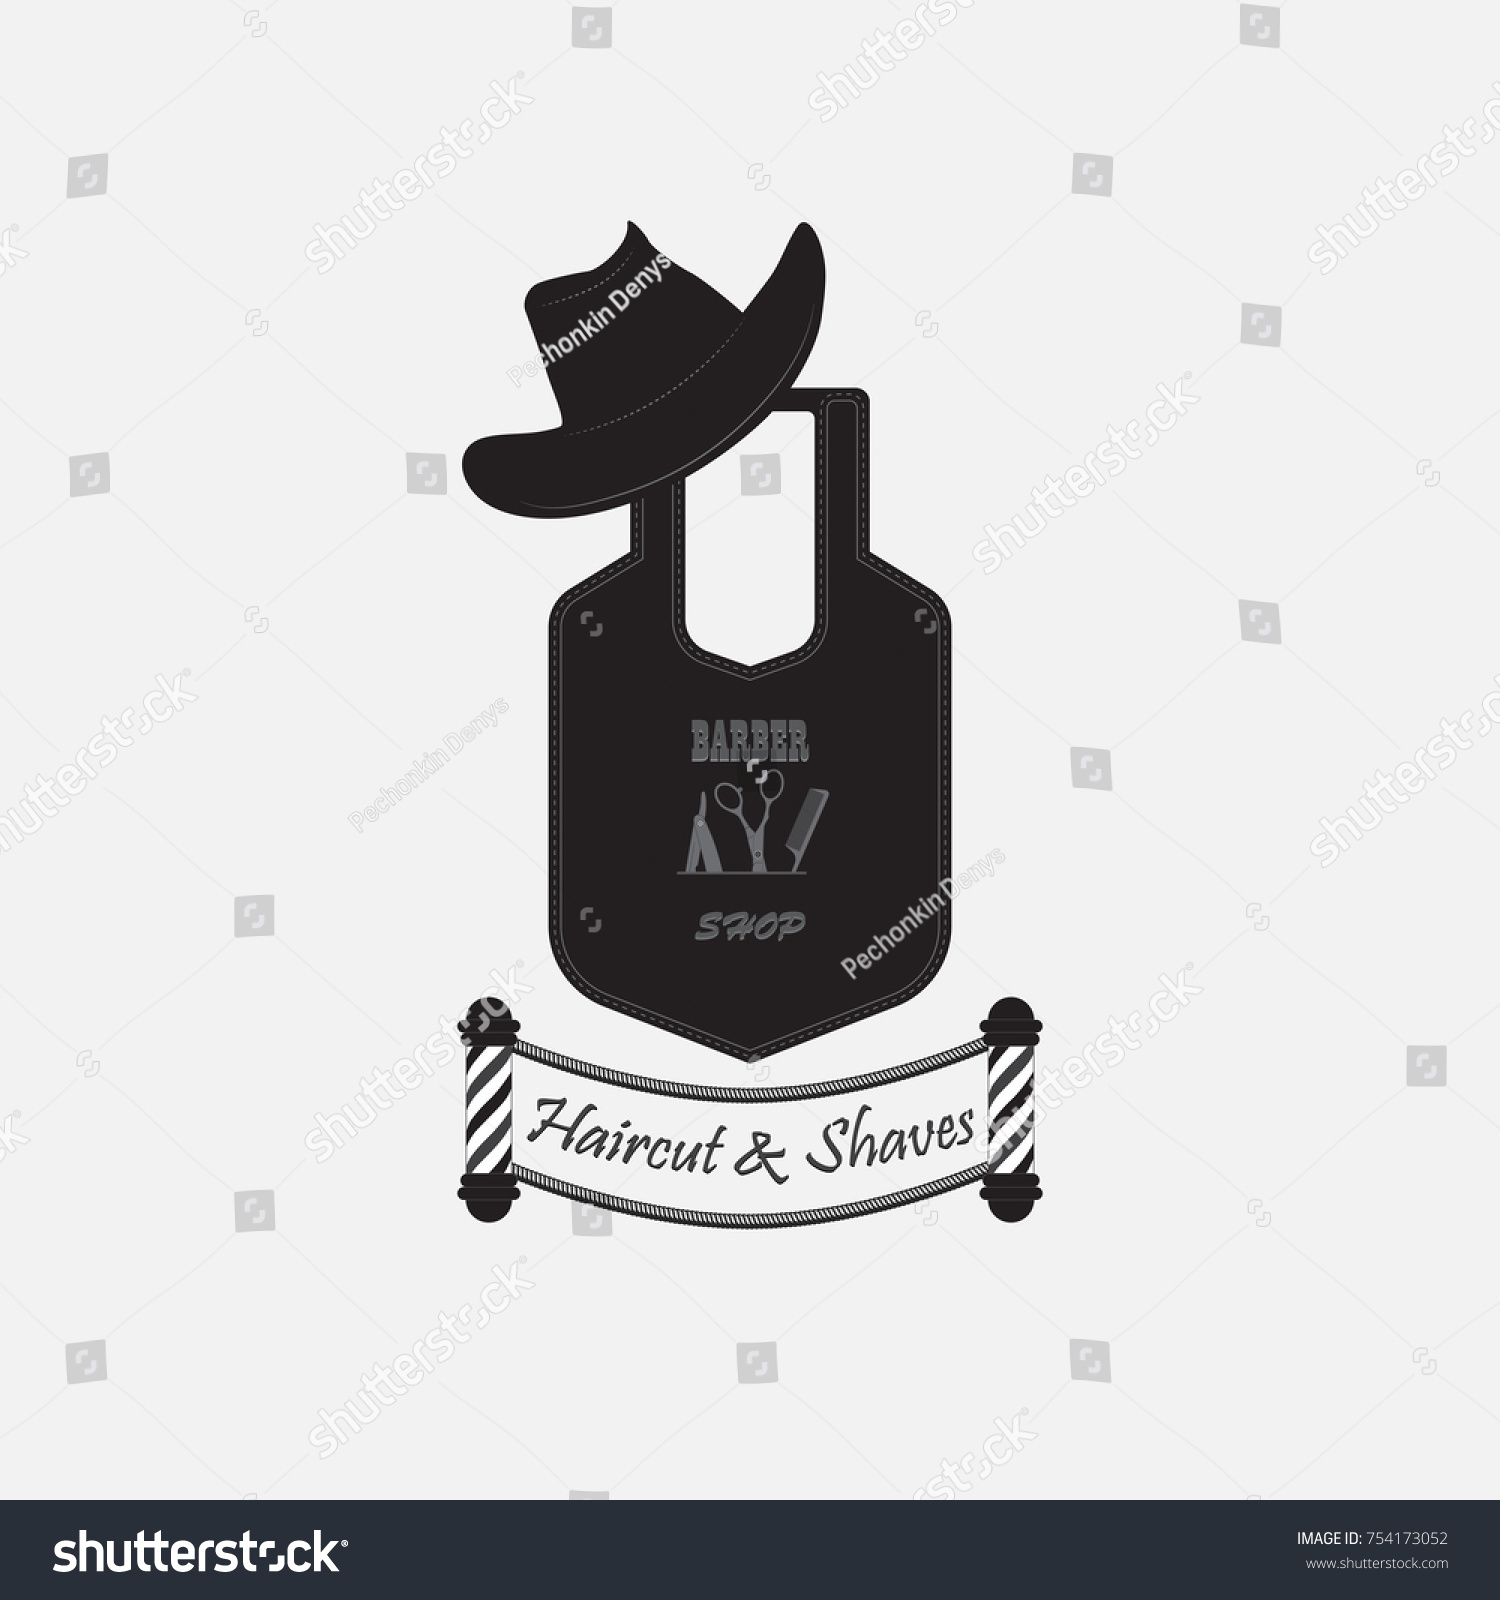 Vector Image Objects Symbolizing Barber Shop Stock Vector